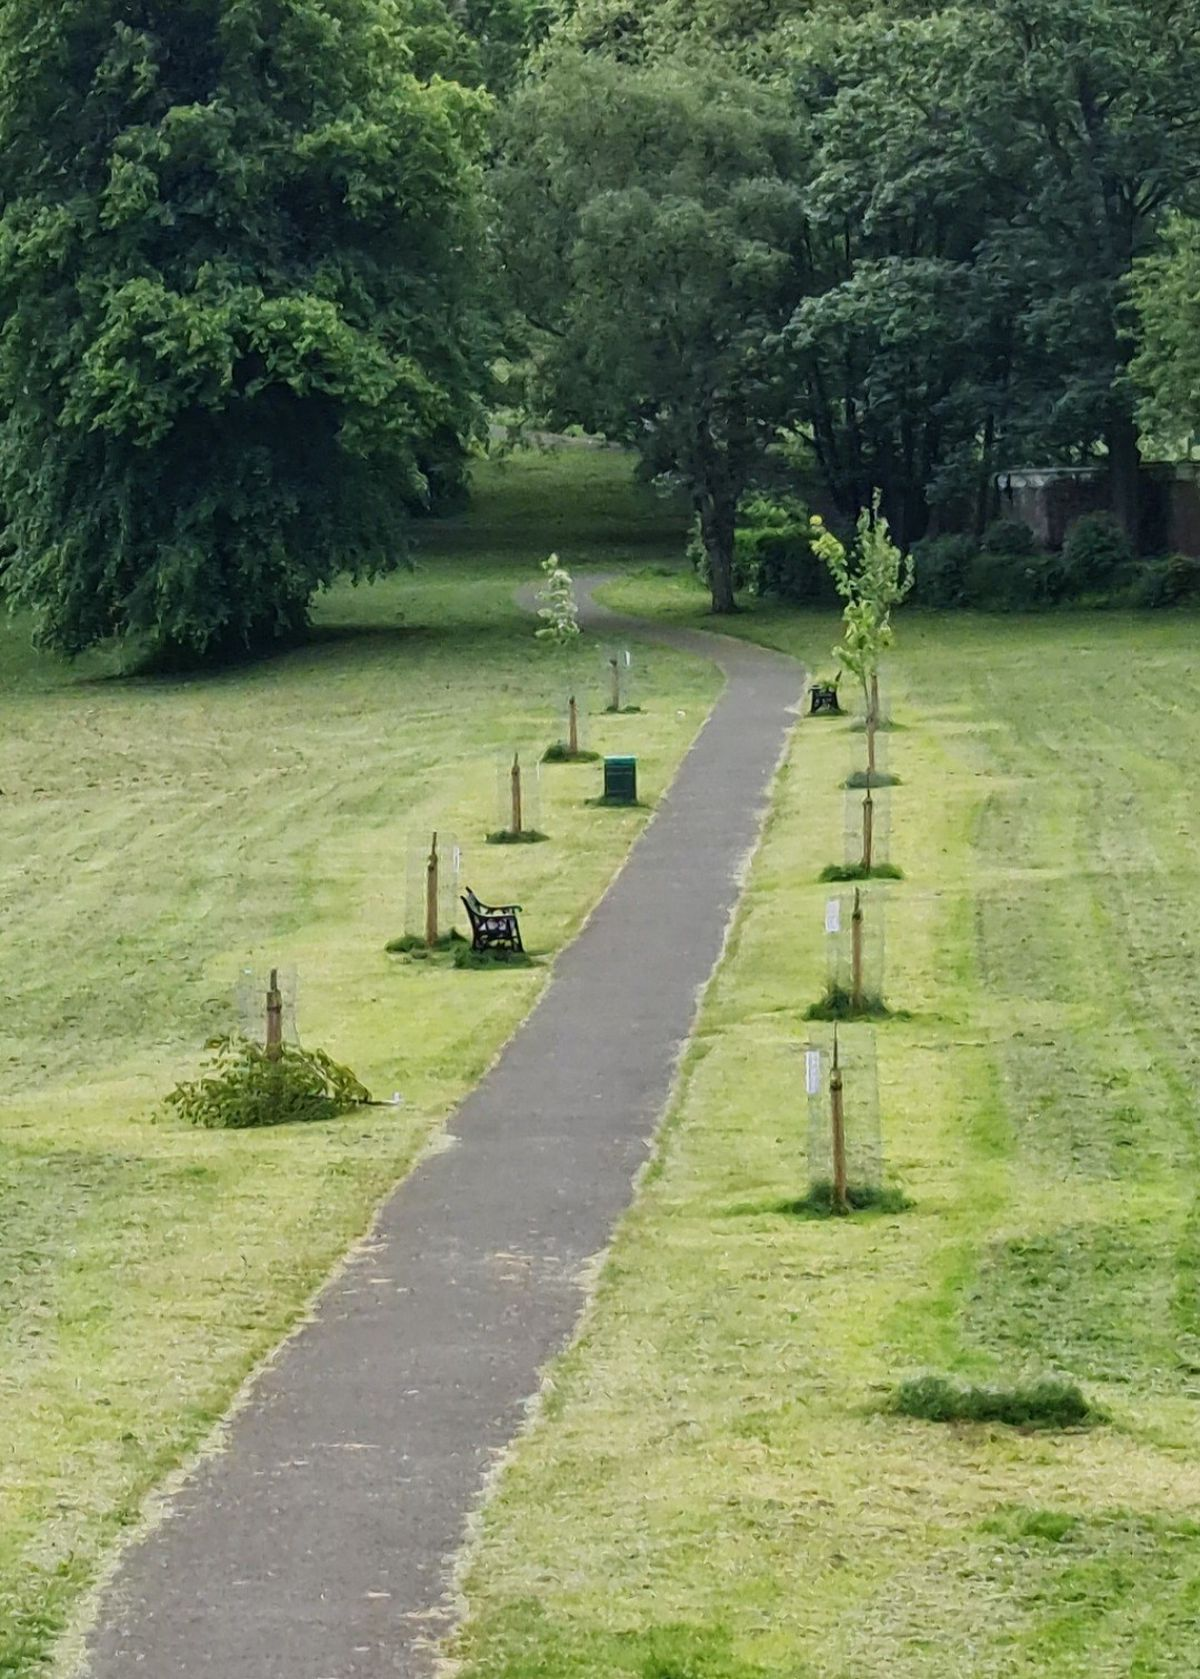 Trees have been damaged across Dudley which has prompted a plea from councillors. Photo: Dudley Council